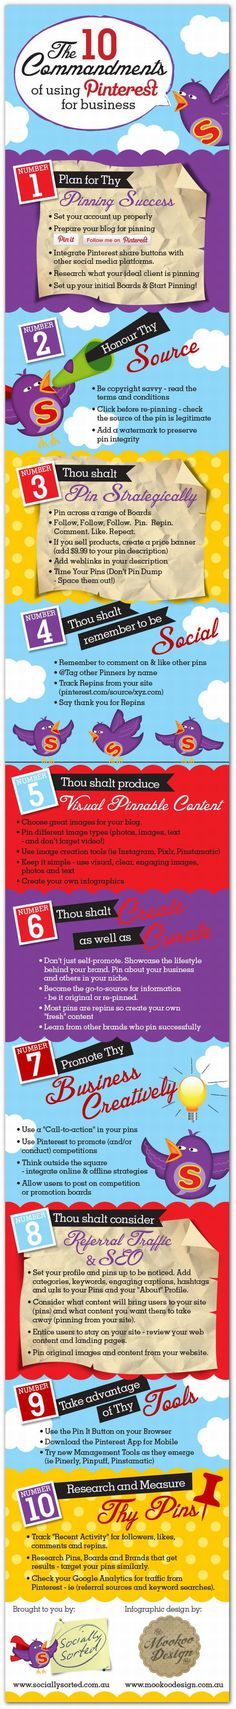 Learn It Live teaches courses on marketing for business.  This is a great info graphic on using Pinterest for business.